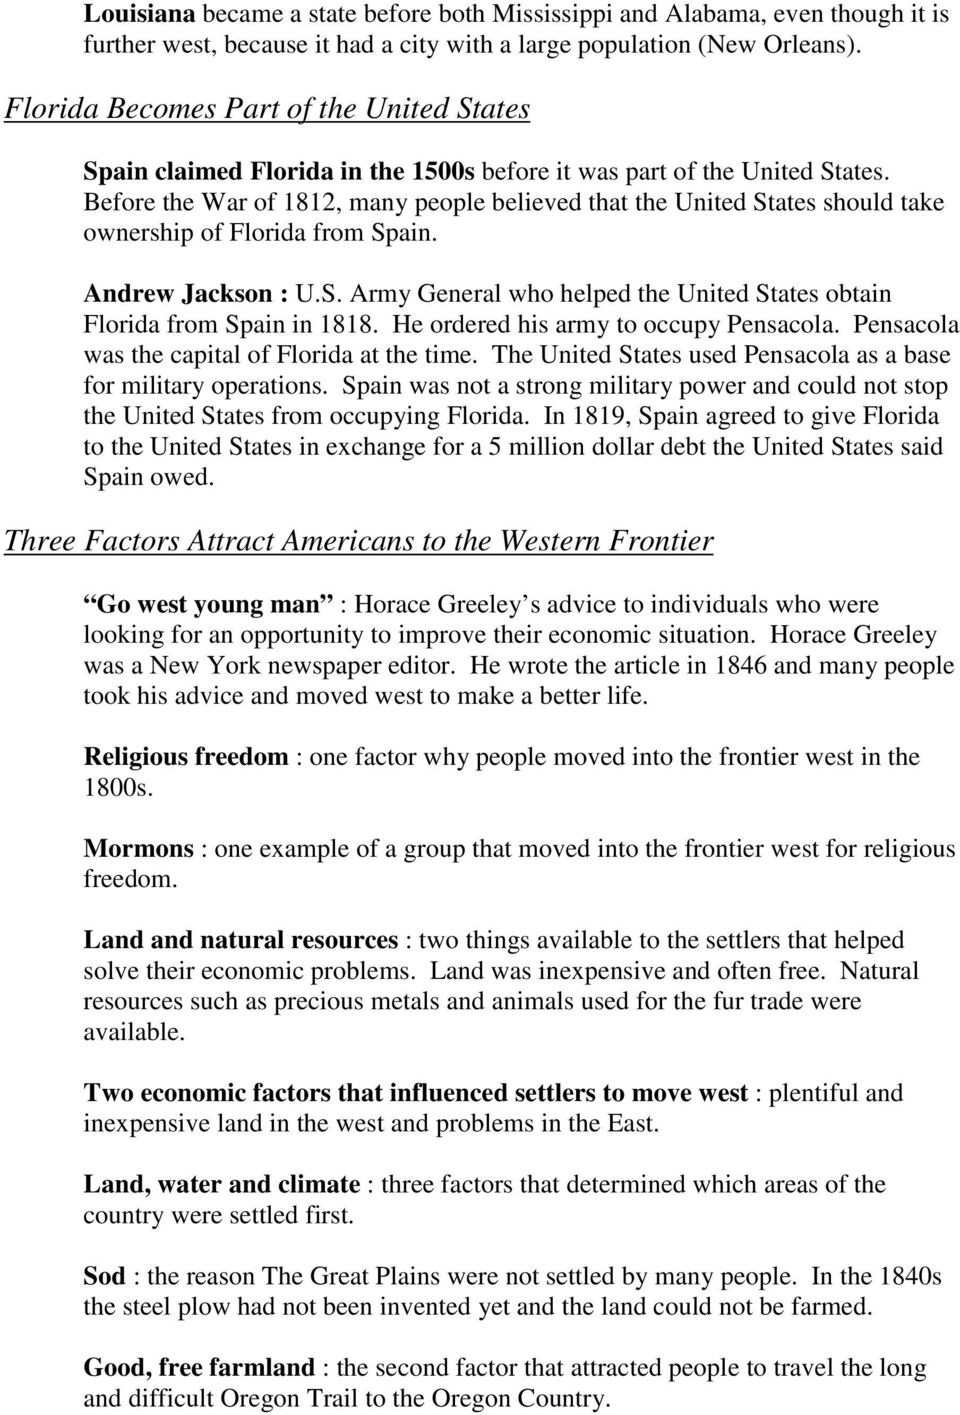 Before the War of 1812, many people believed that the United States should take ownership of Florida from Spain. Andrew Jackson : U.S. Army General who helped the United States obtain Florida from Spain in 1818.